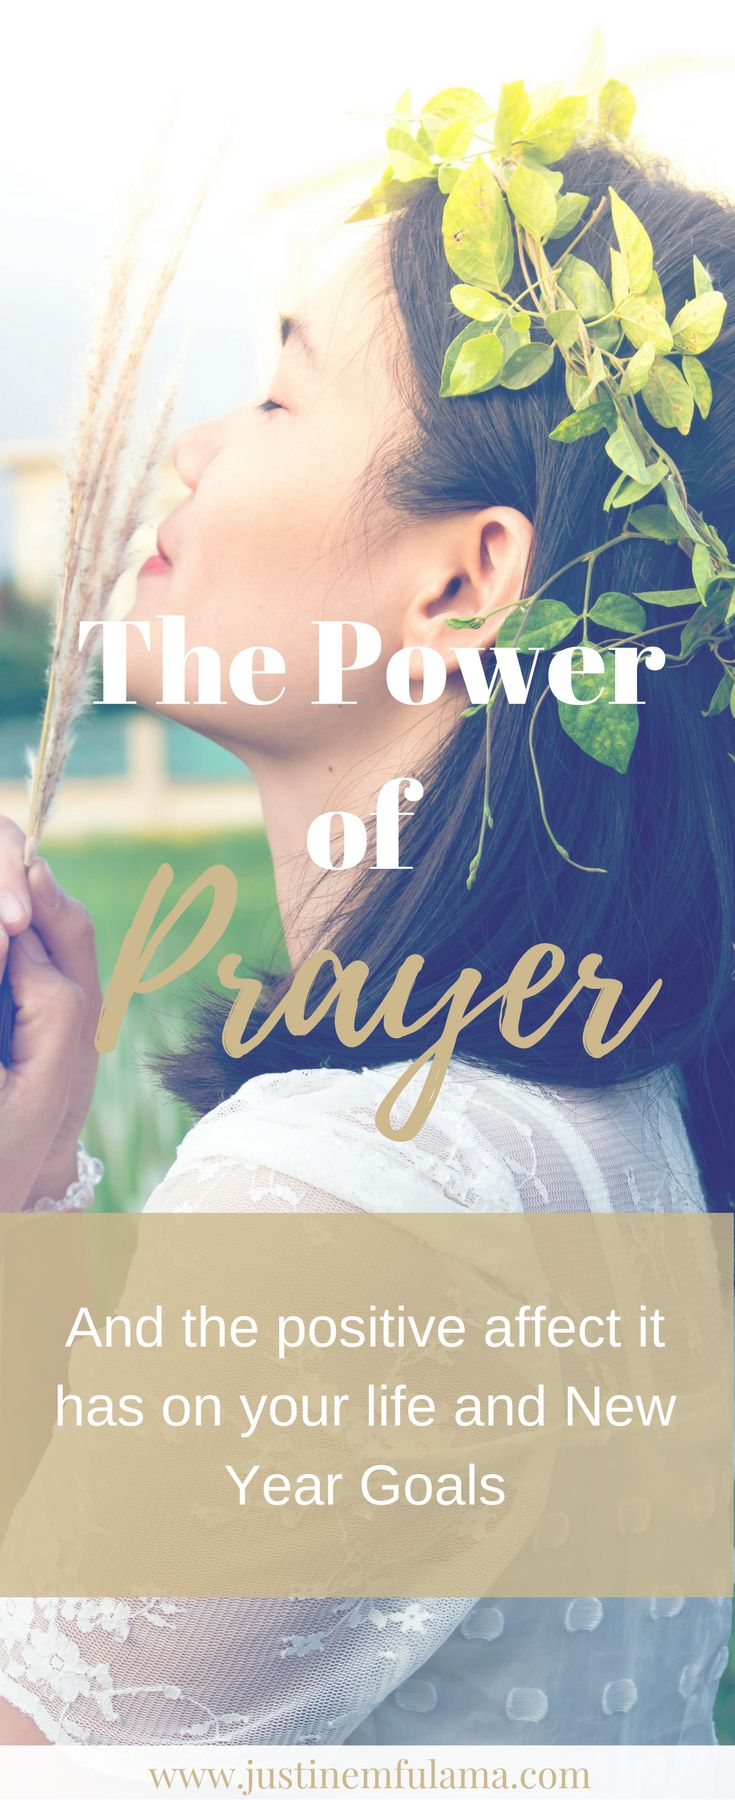 The Power of Prayer. Discover the positive affect prayer has on your life and New Year Goals | focus, peace, wisdom, purpose, gratitude, strength, scripture, guidance, #prayerlife #god #christian #biblical womanhood #faith